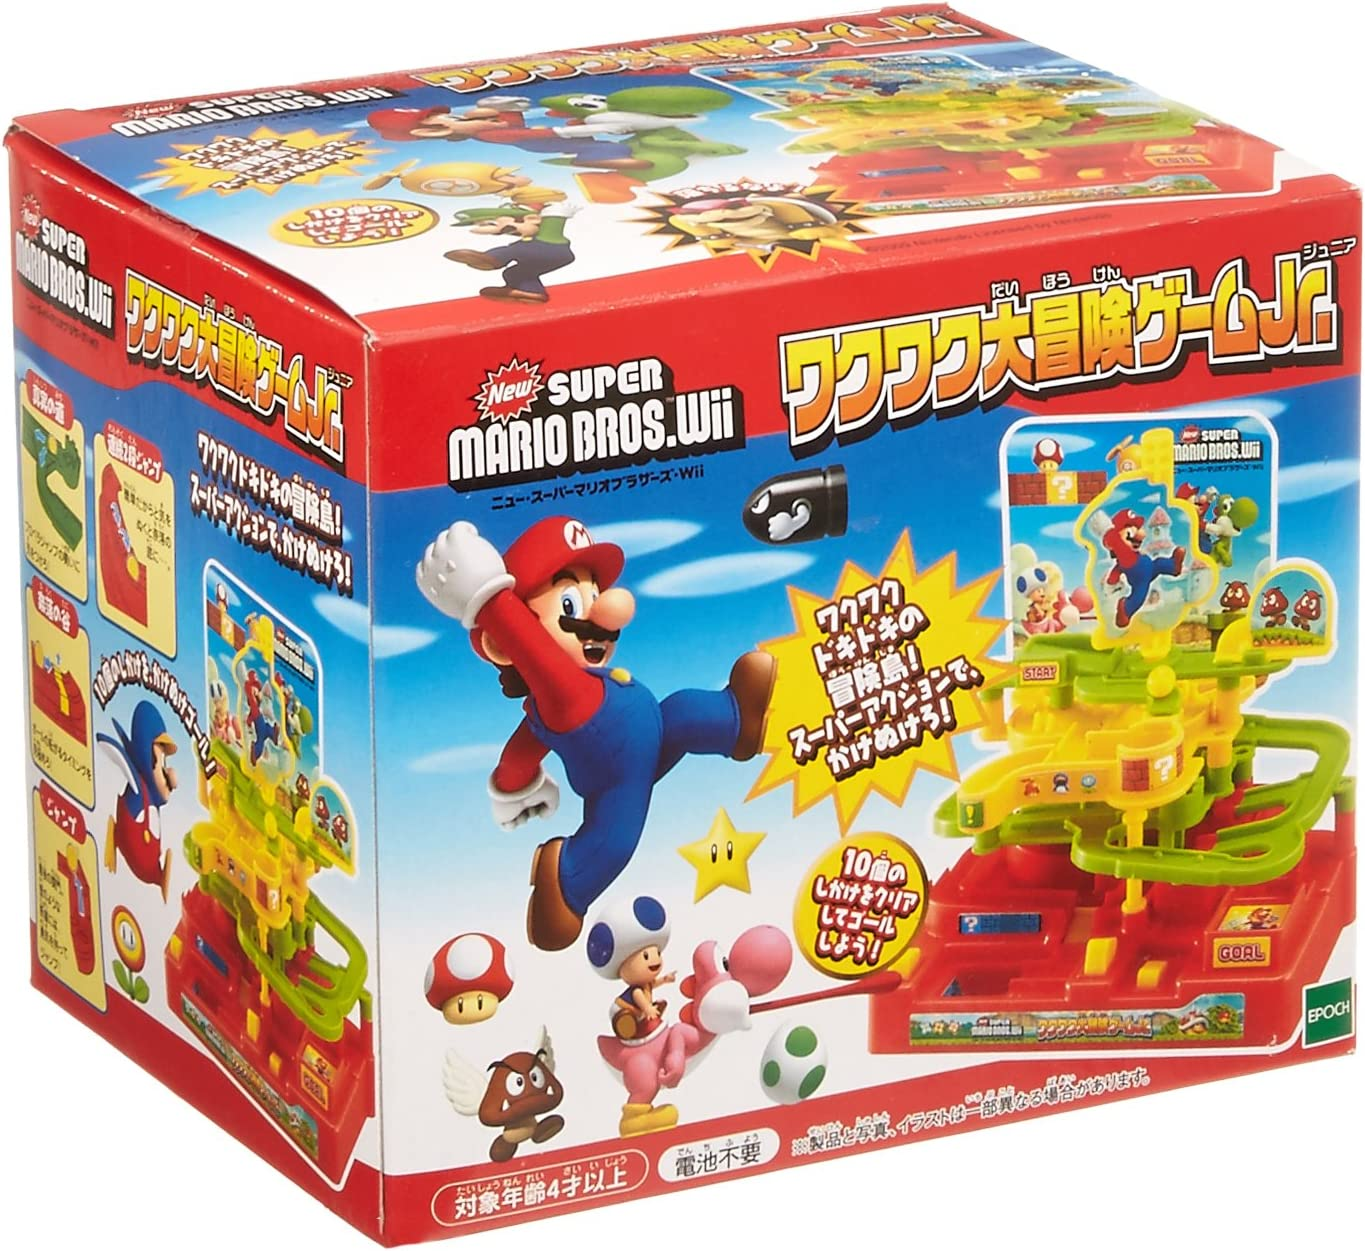 New Super Mario Bros. Wii exciting large adventure game Jr. (japan import): Amazon.es: Juguetes y juegos